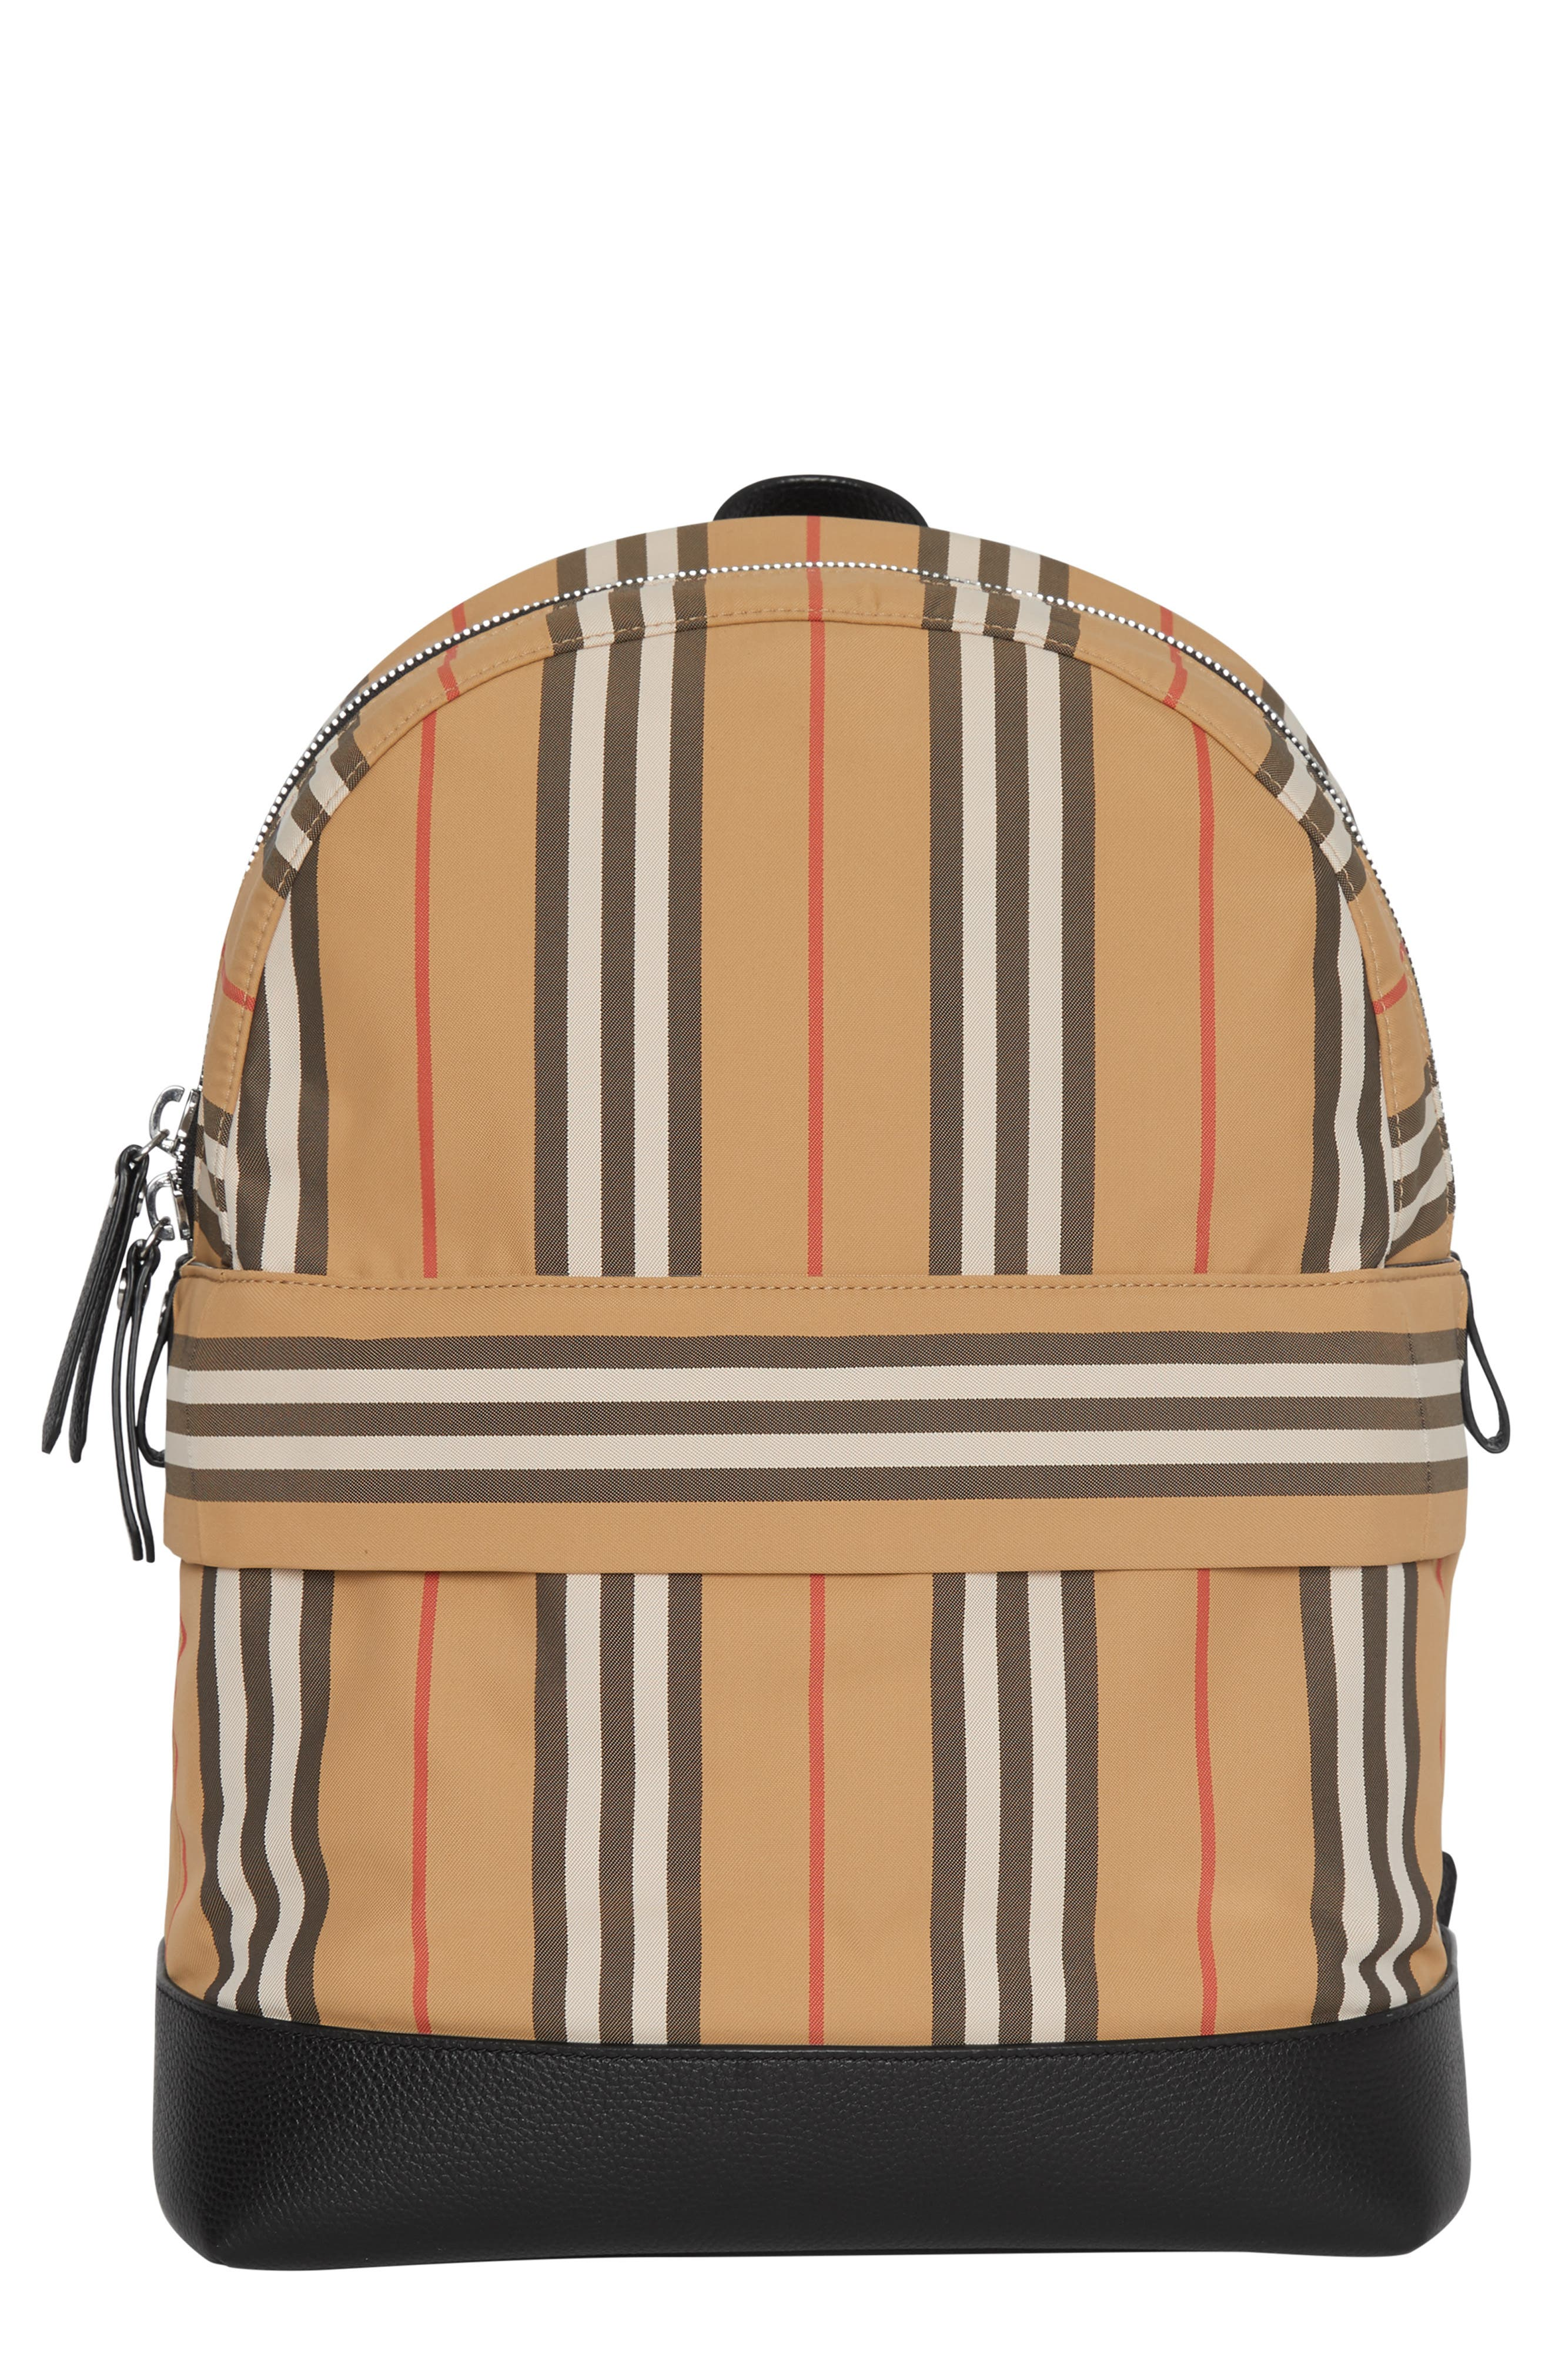 BURBERRY Nico Archive Stripe Backpack, Main, color, ARCHIVE BEIGE